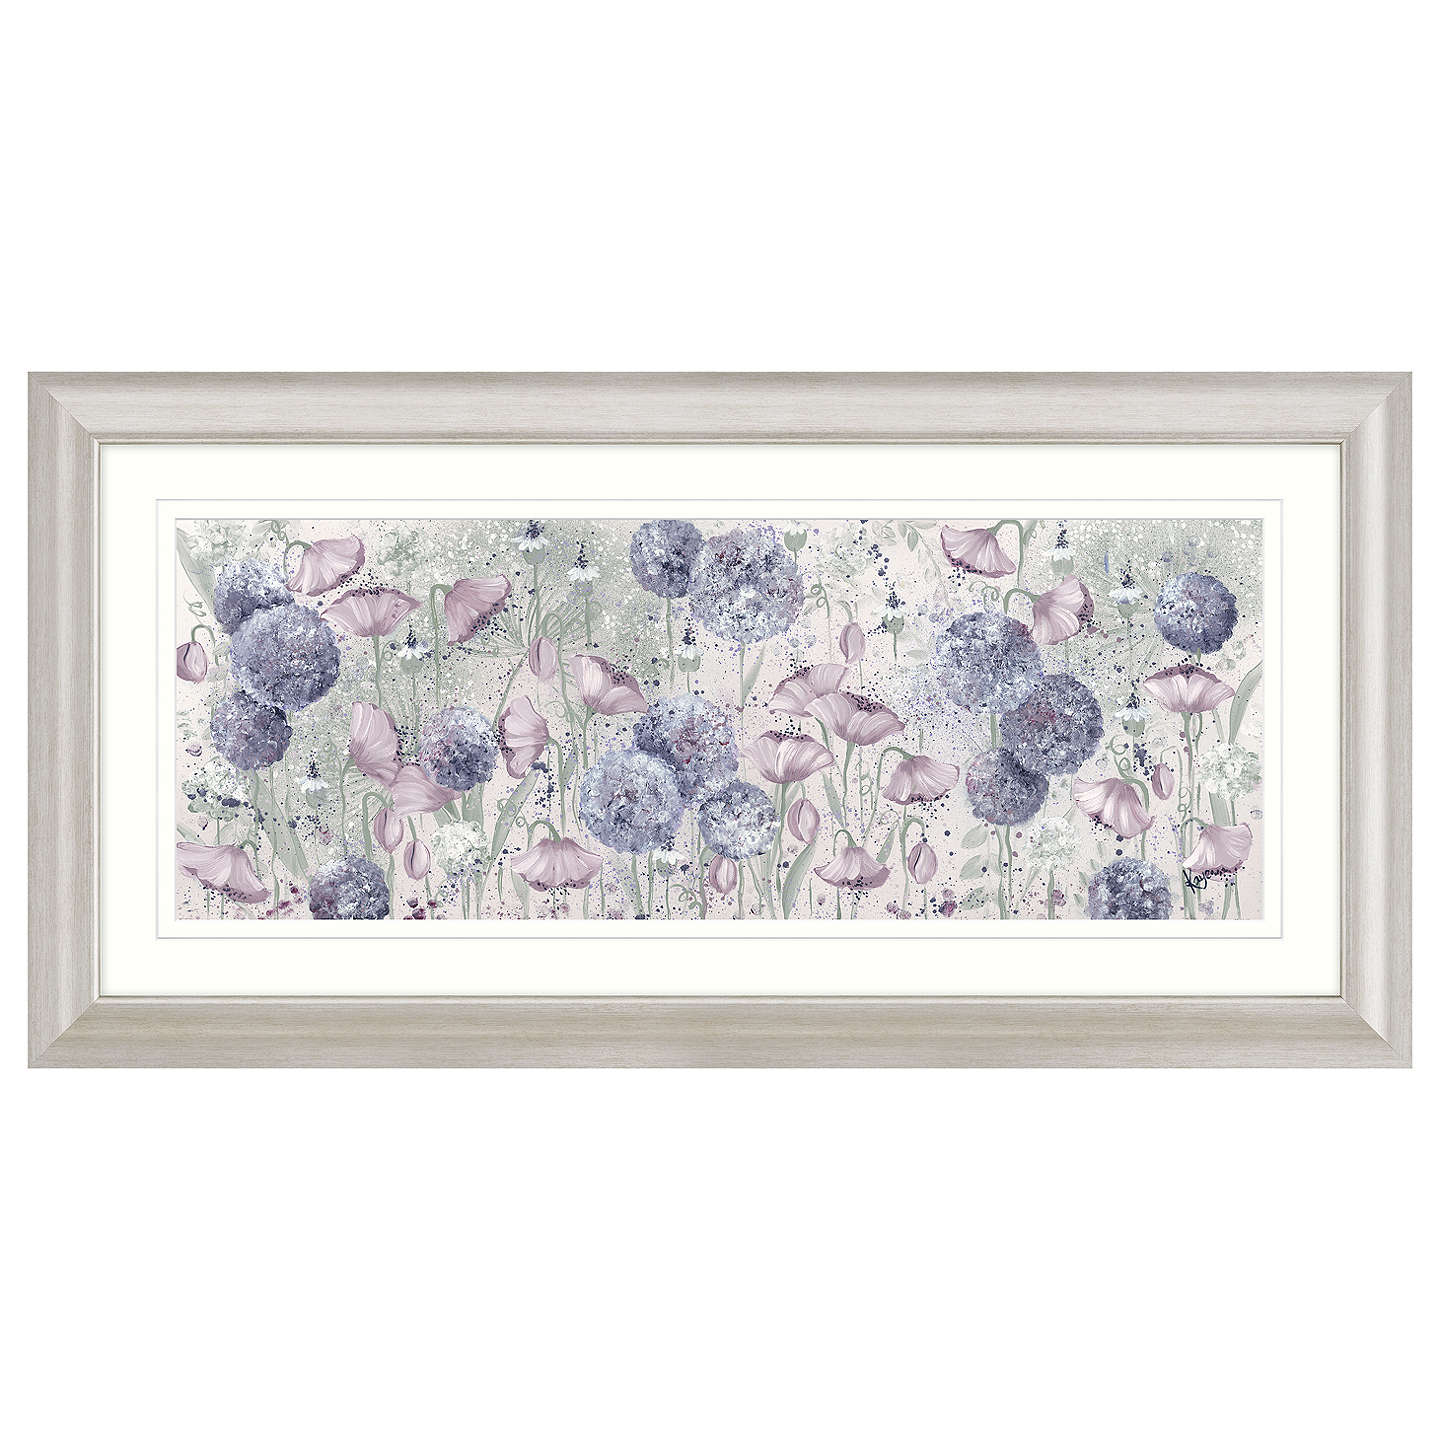 BuyKaye Lake - Early Morning Meadow Framed Print, 110.5 x 55.5cm Online at johnlewis.com